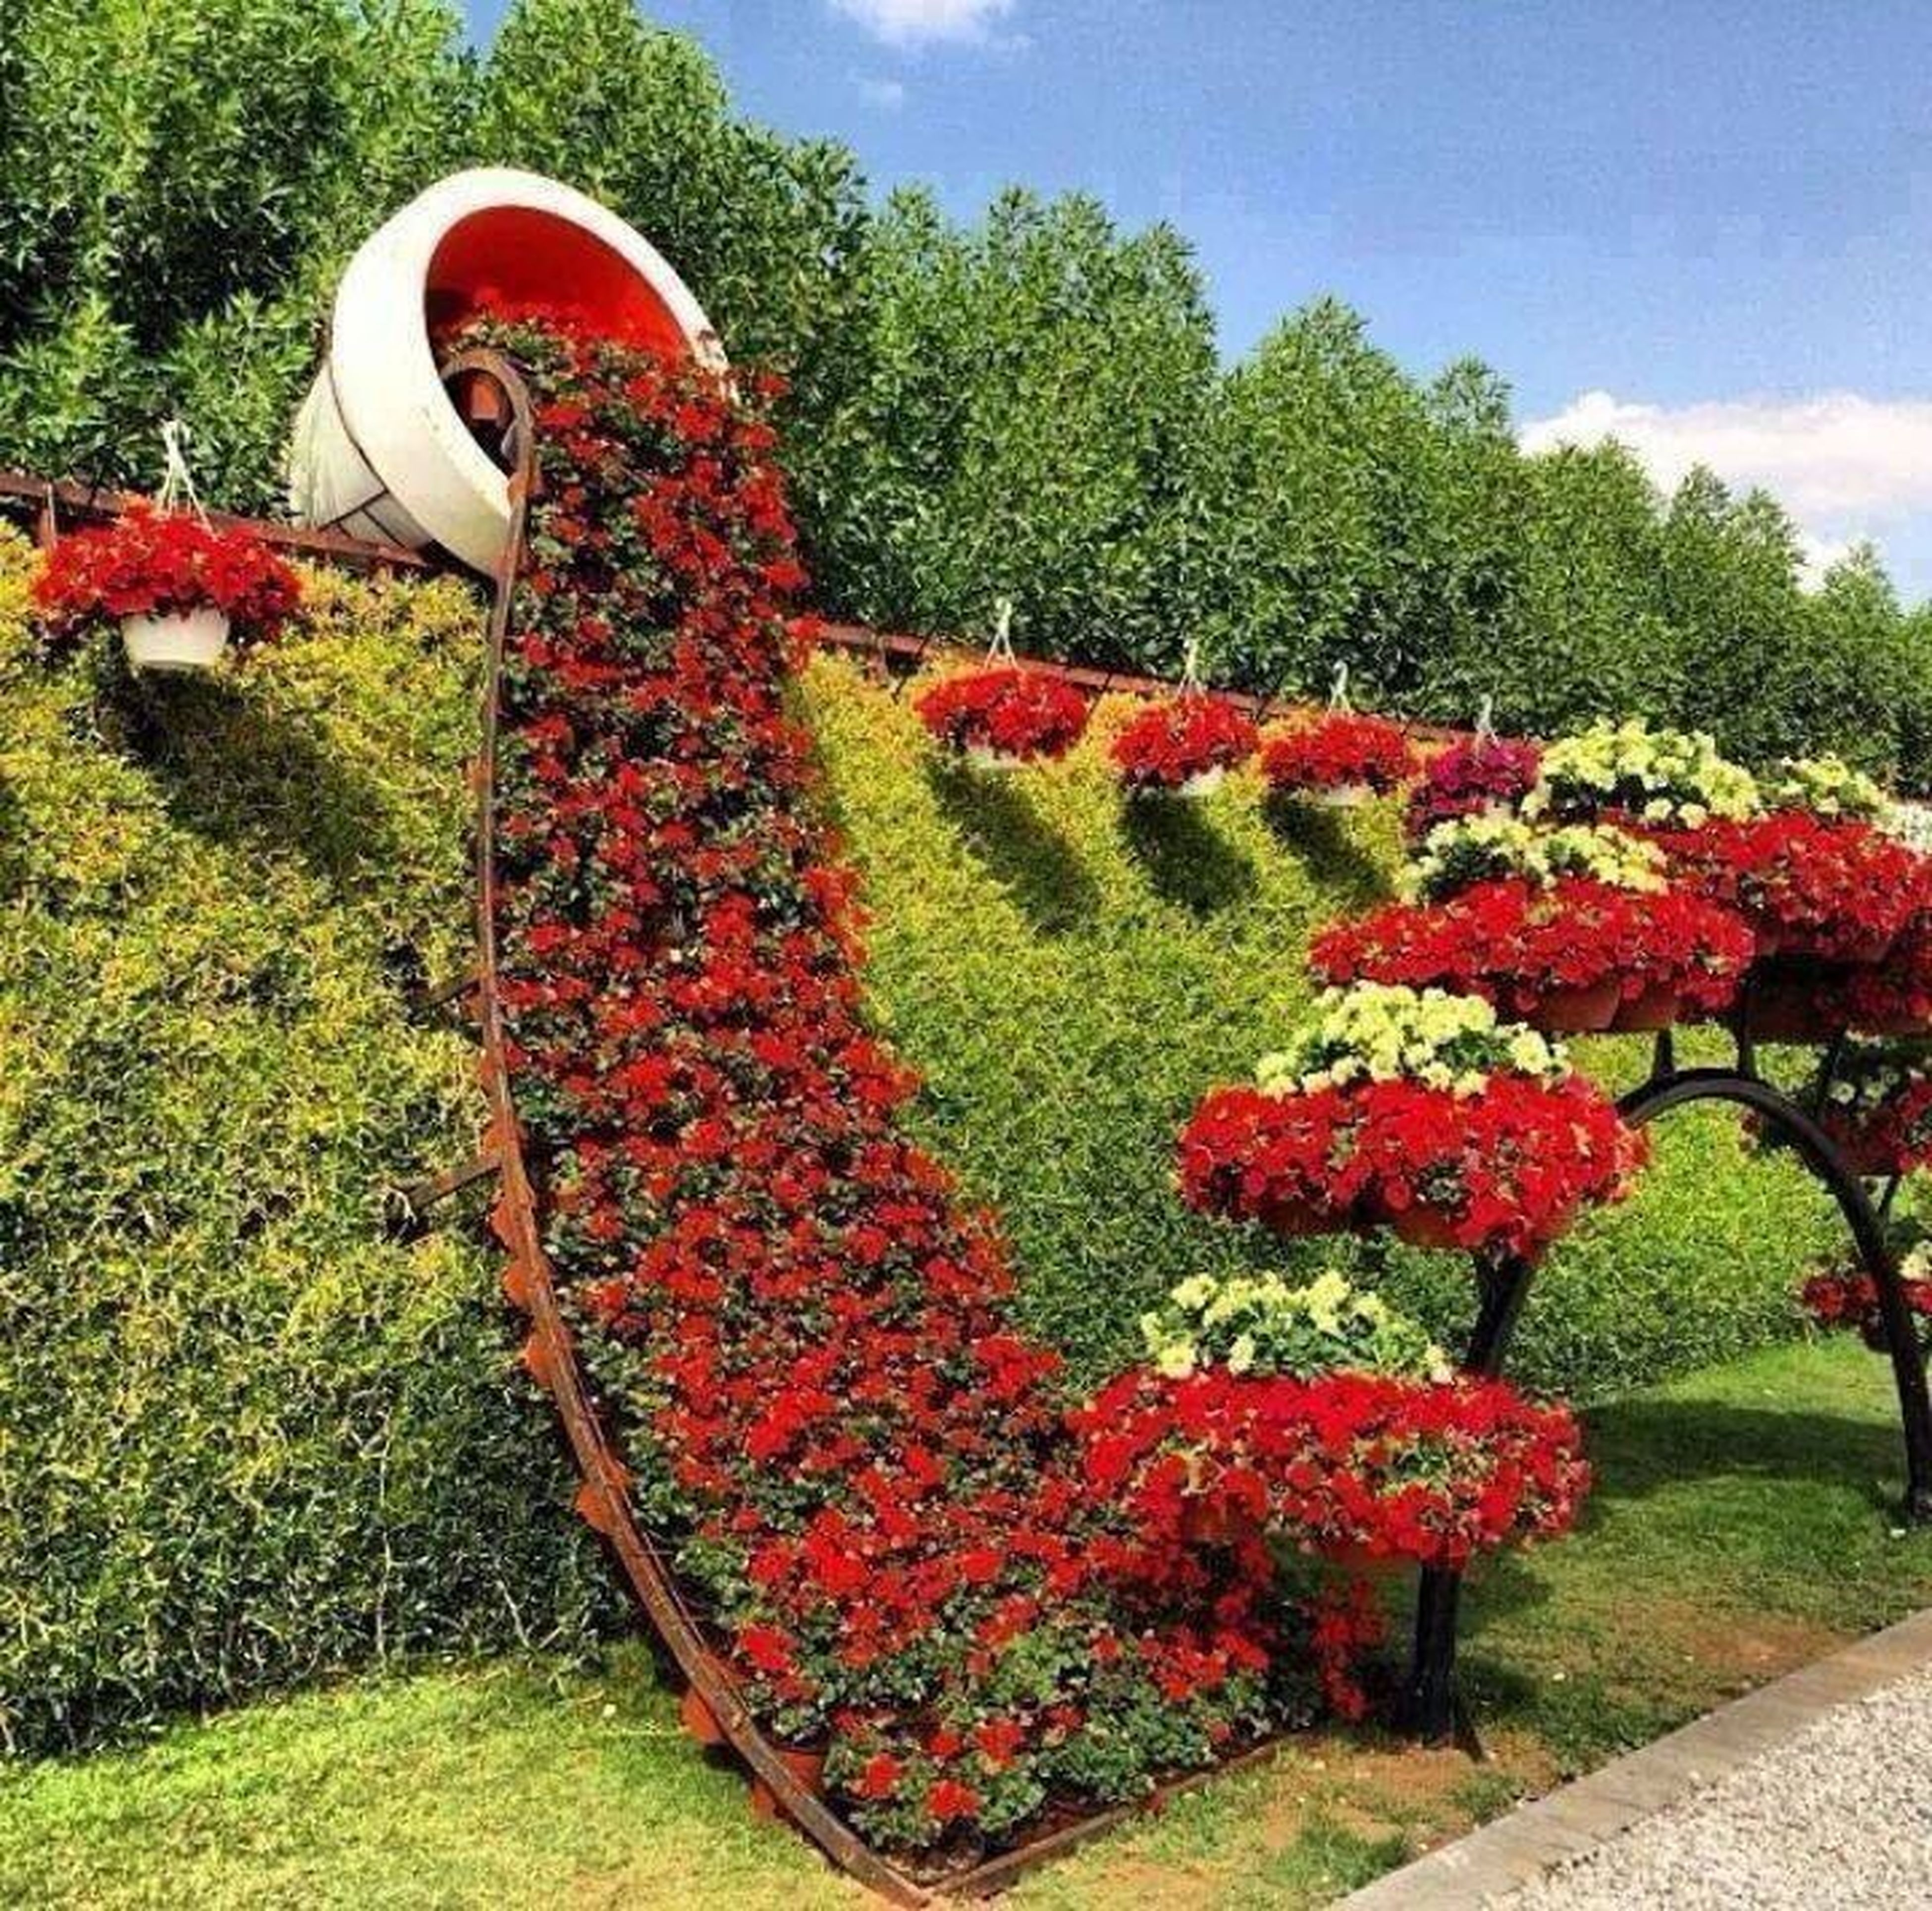 tree, growth, red, grass, park - man made space, flower, plant, green color, nature, field, day, sky, outdoors, sunlight, beauty in nature, tranquility, garden, park, lawn, no people